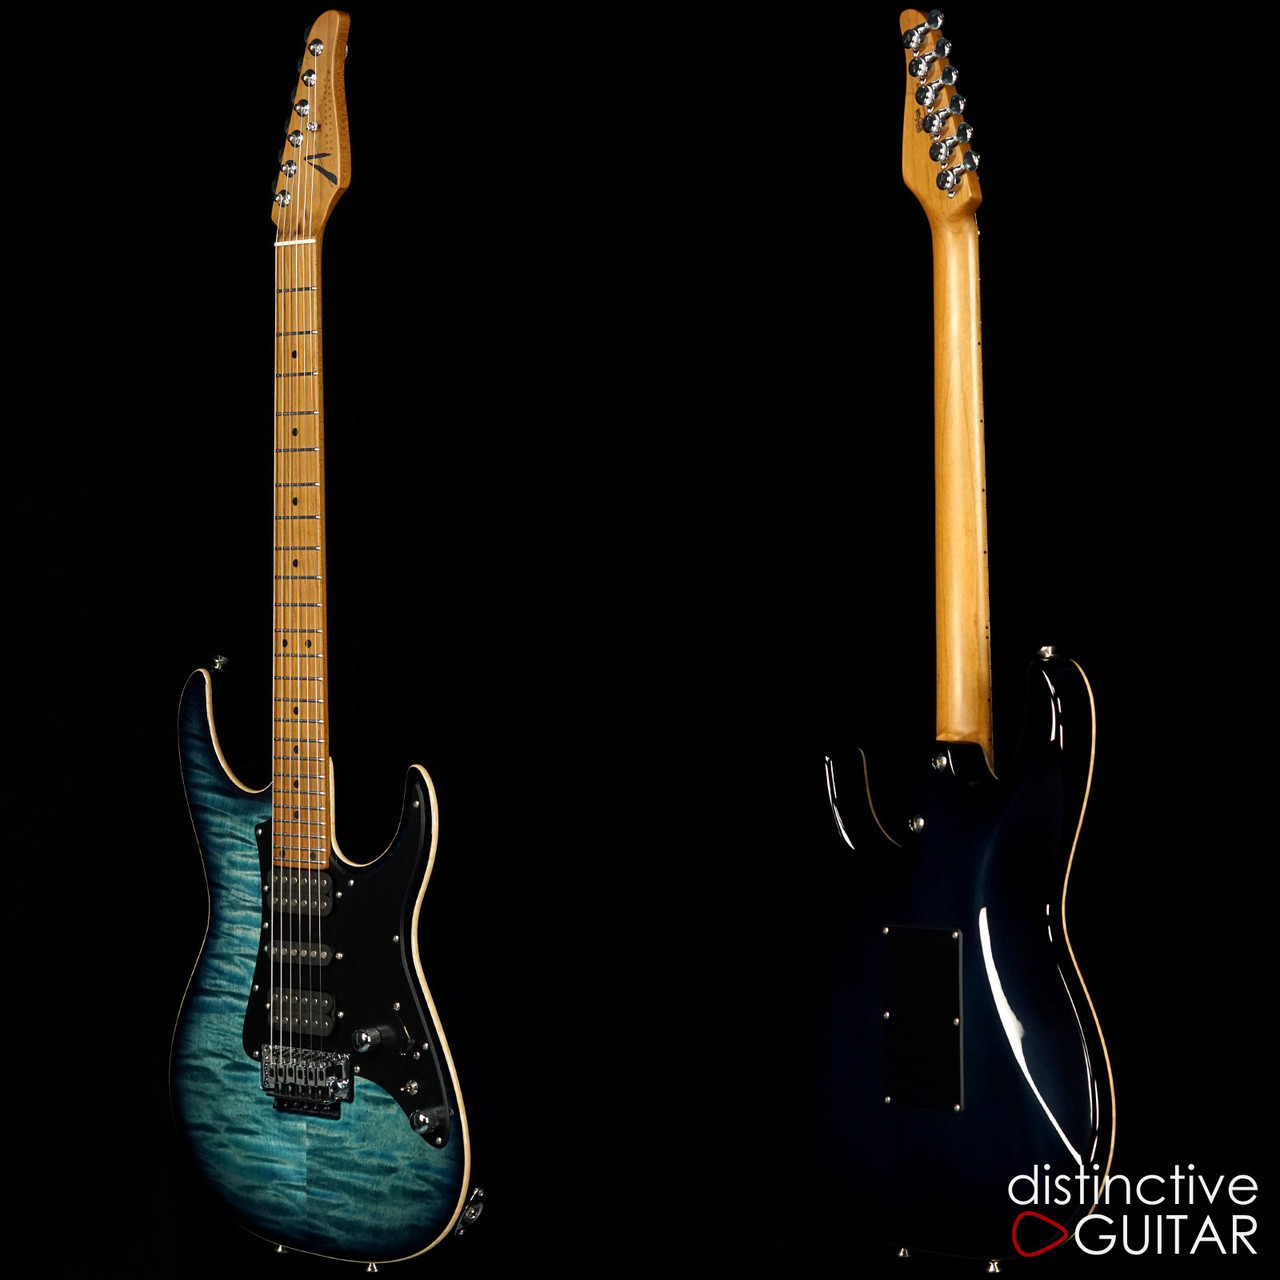 Distinctive Guitar Whats New At The Shop Page 20 The Gear Page